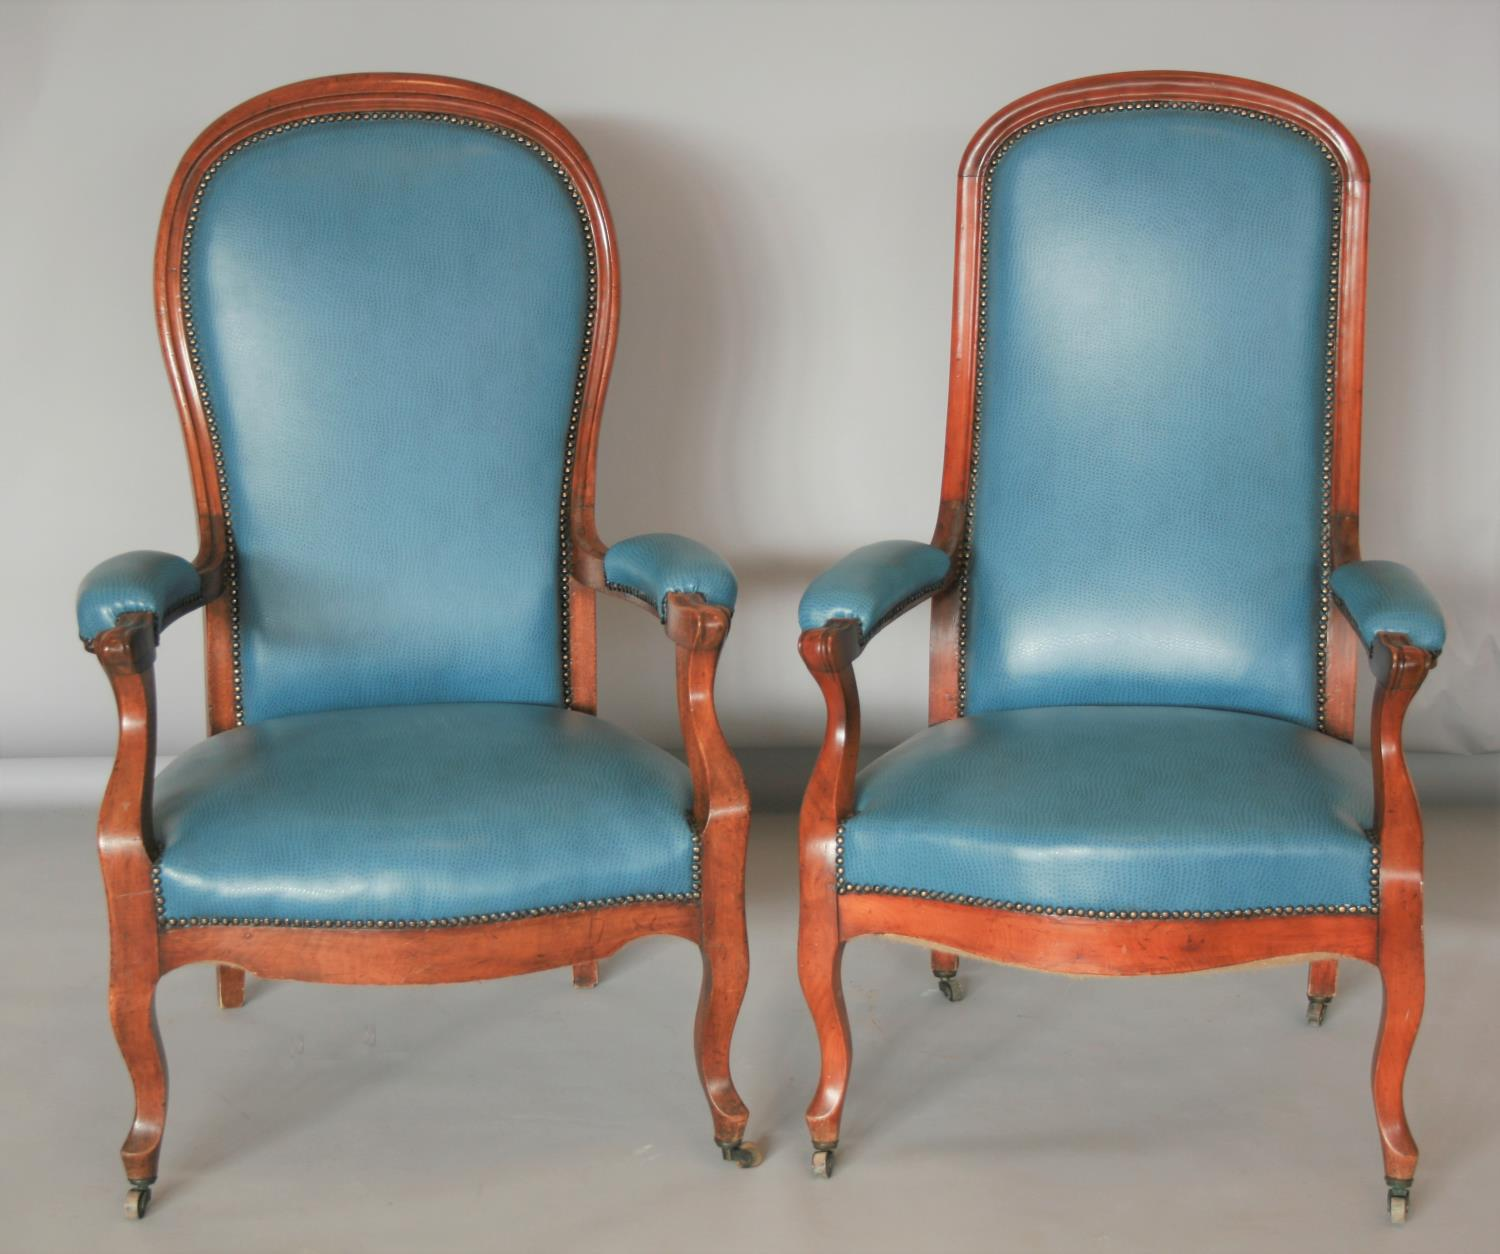 Near pair of Edwardian mahogany armchairs, with speckled hide upholstery.